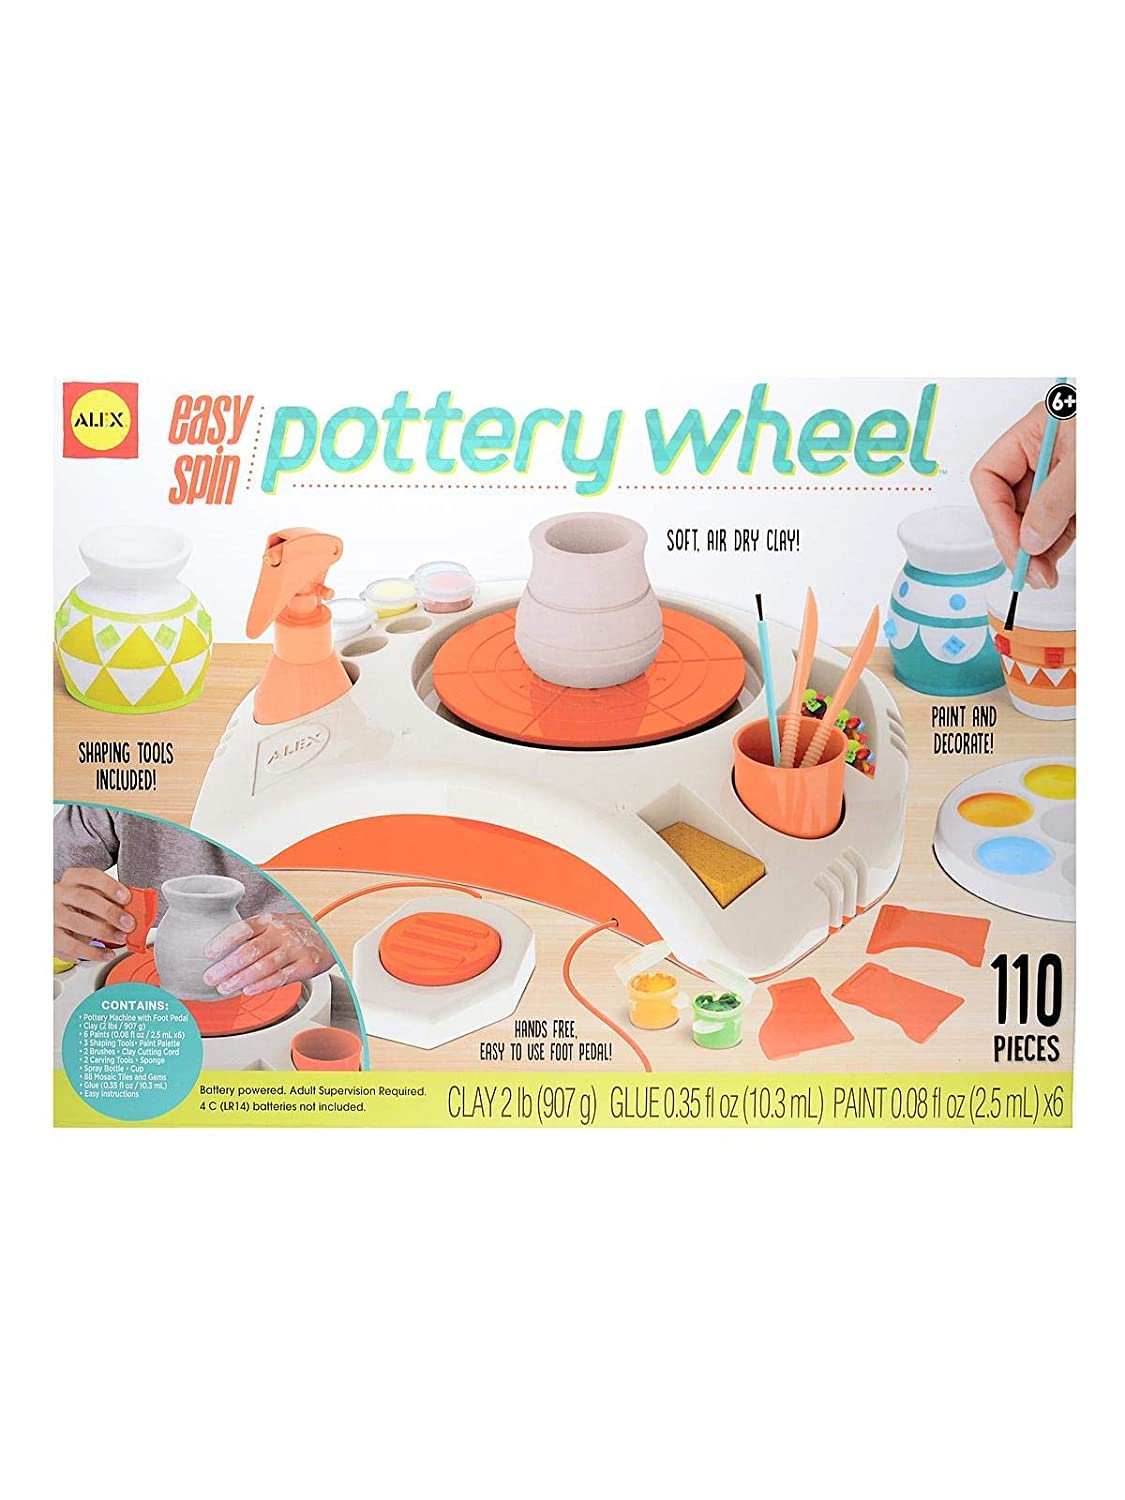 Top 7 Best Pottery Wheels for Kids Reviews in 2020 6